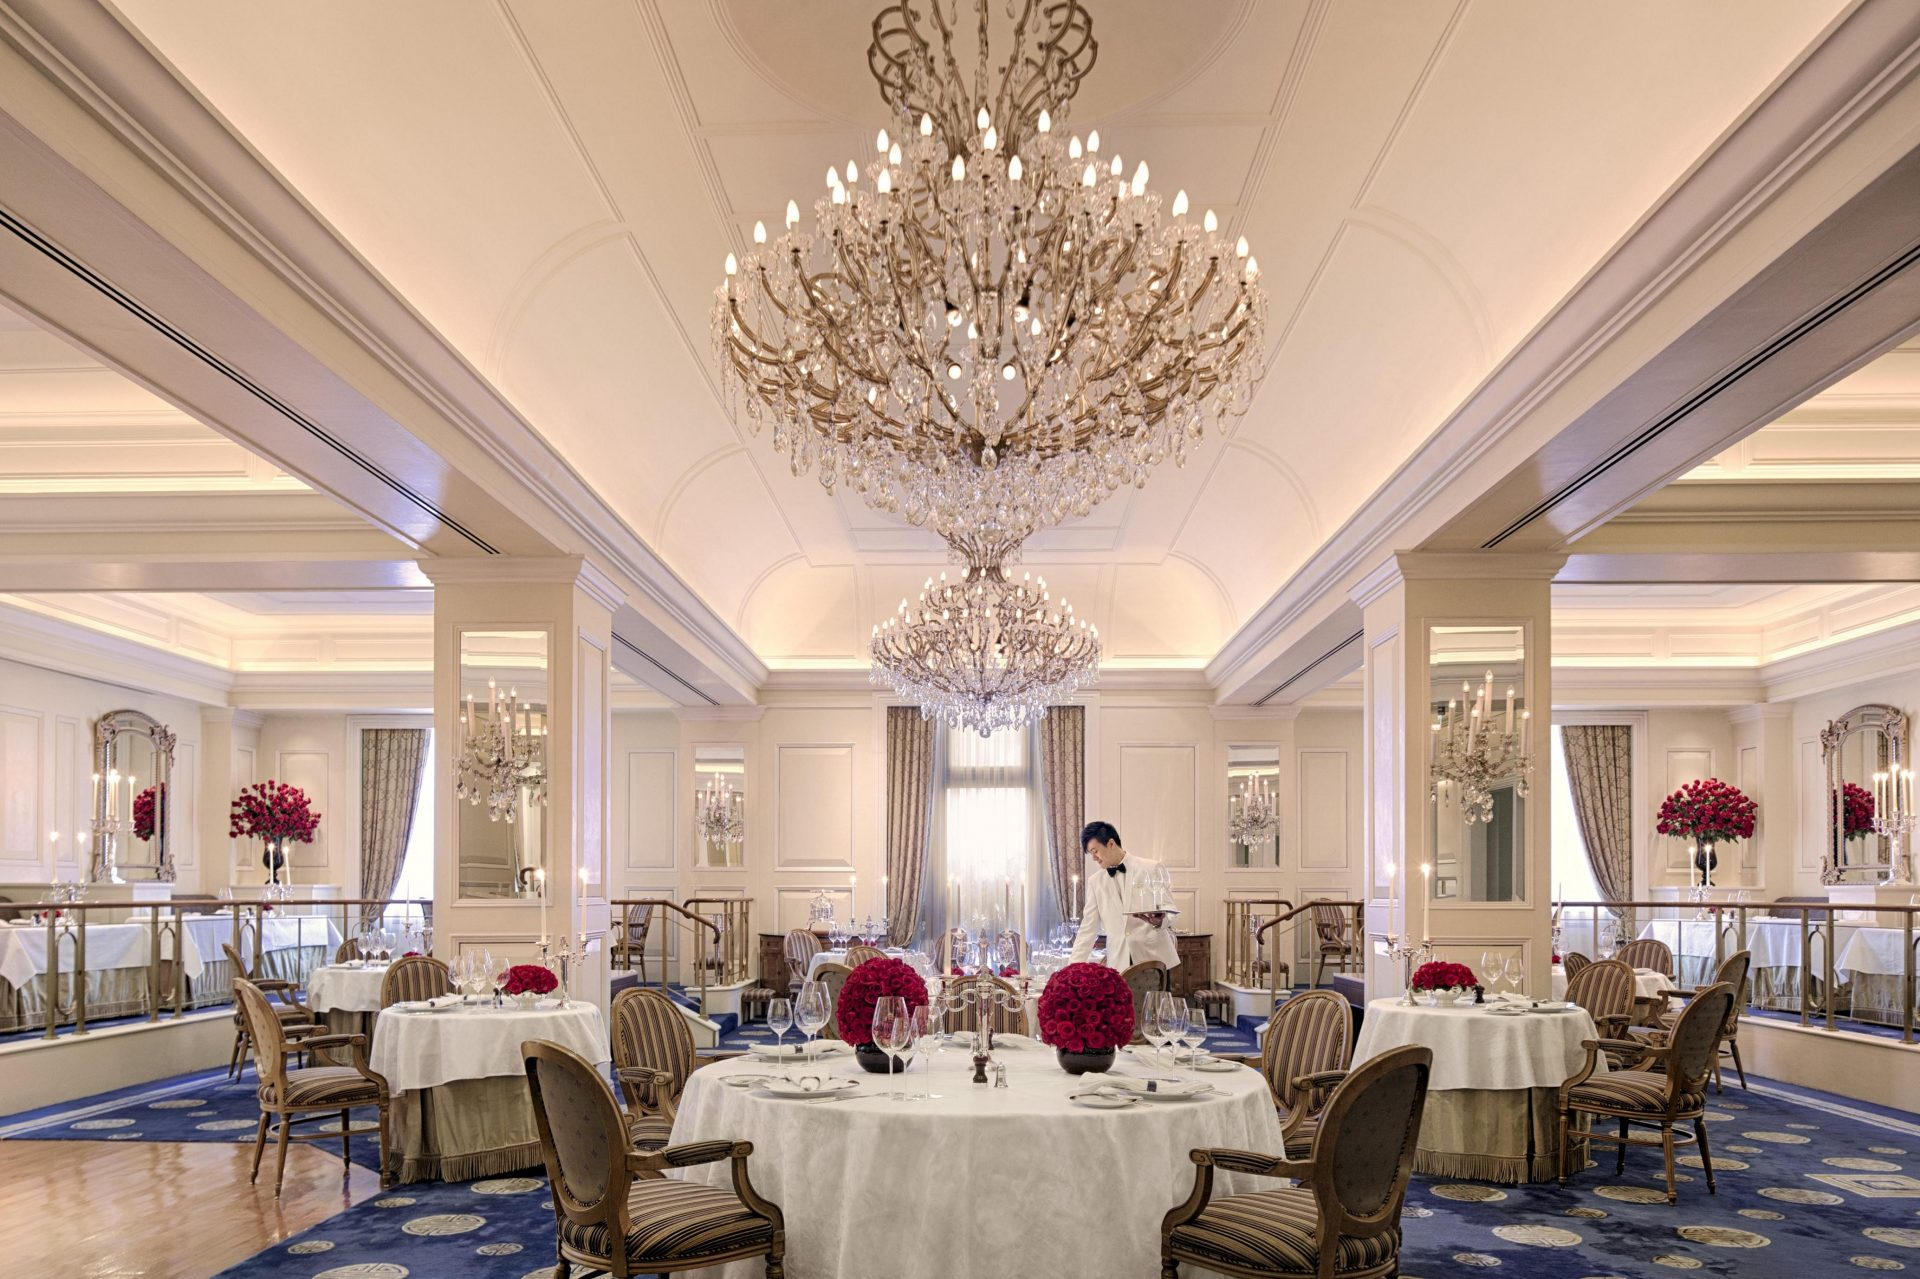 10 Best French Fine Dining Restaurants in Hong Kong